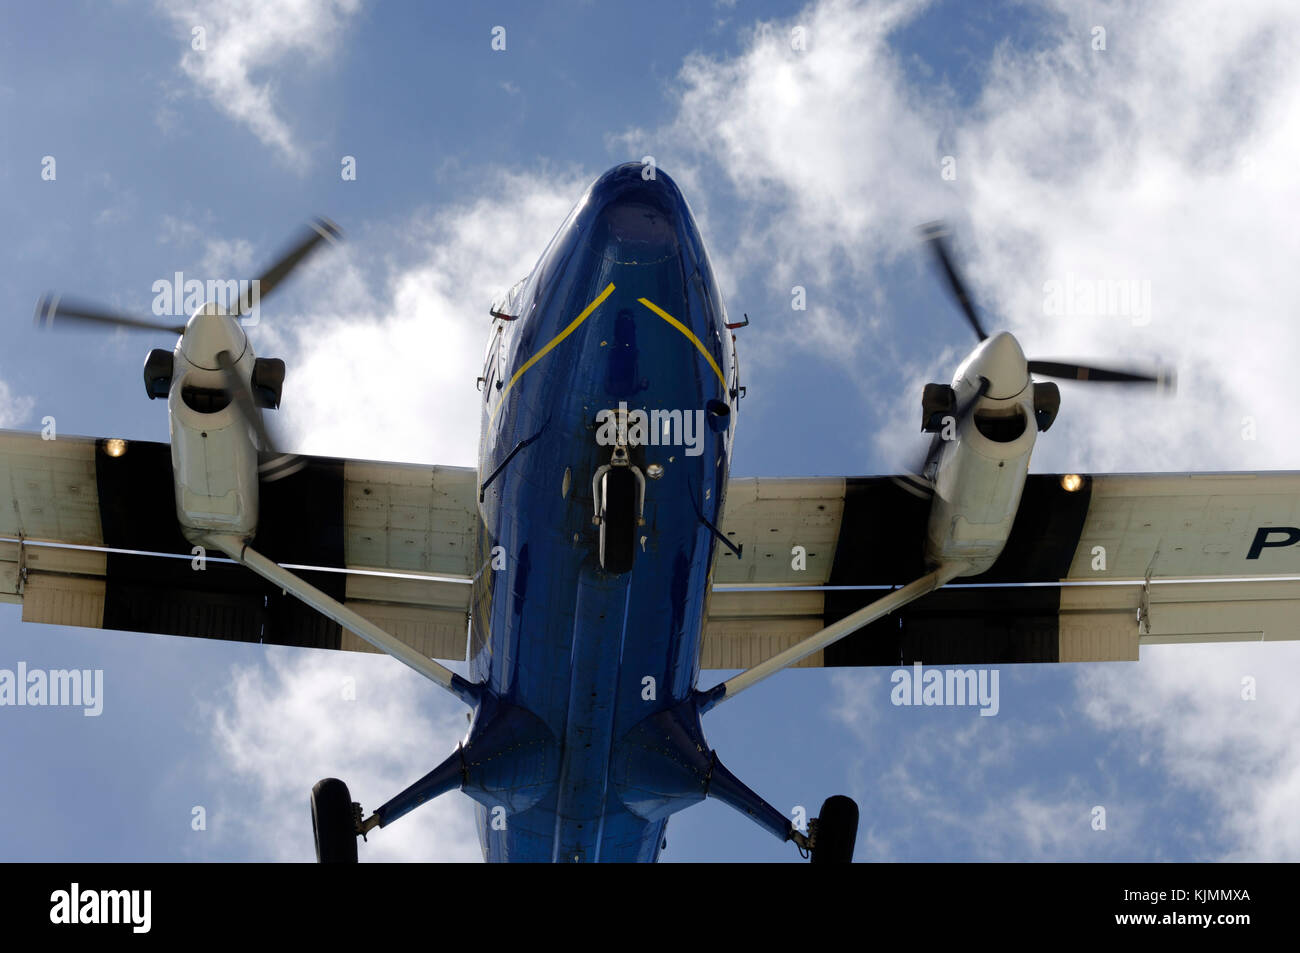 DHC-6 Twin Otter 300  in the air, overhead. A small civil turboprop aircraft. - Stock Image